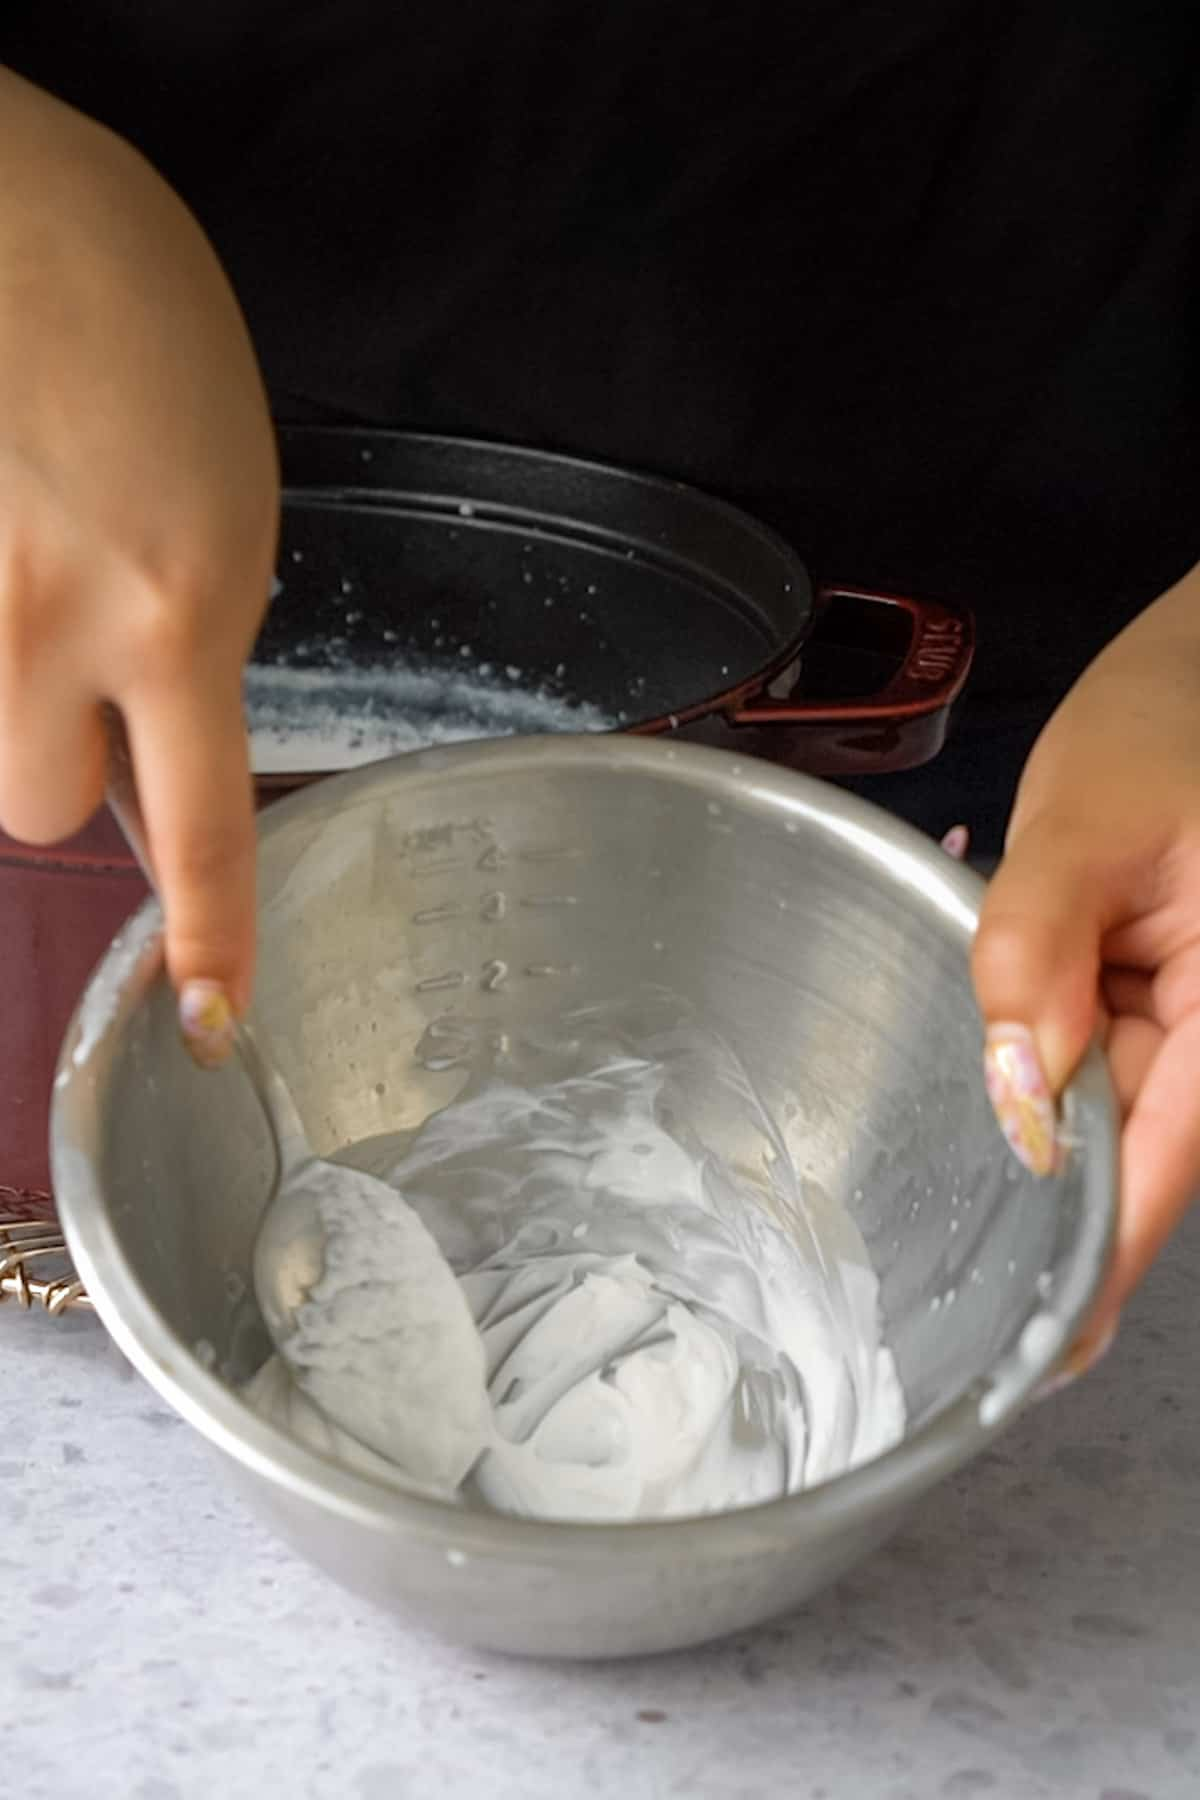 mixing the yogurt starter with a spoon in a bowl